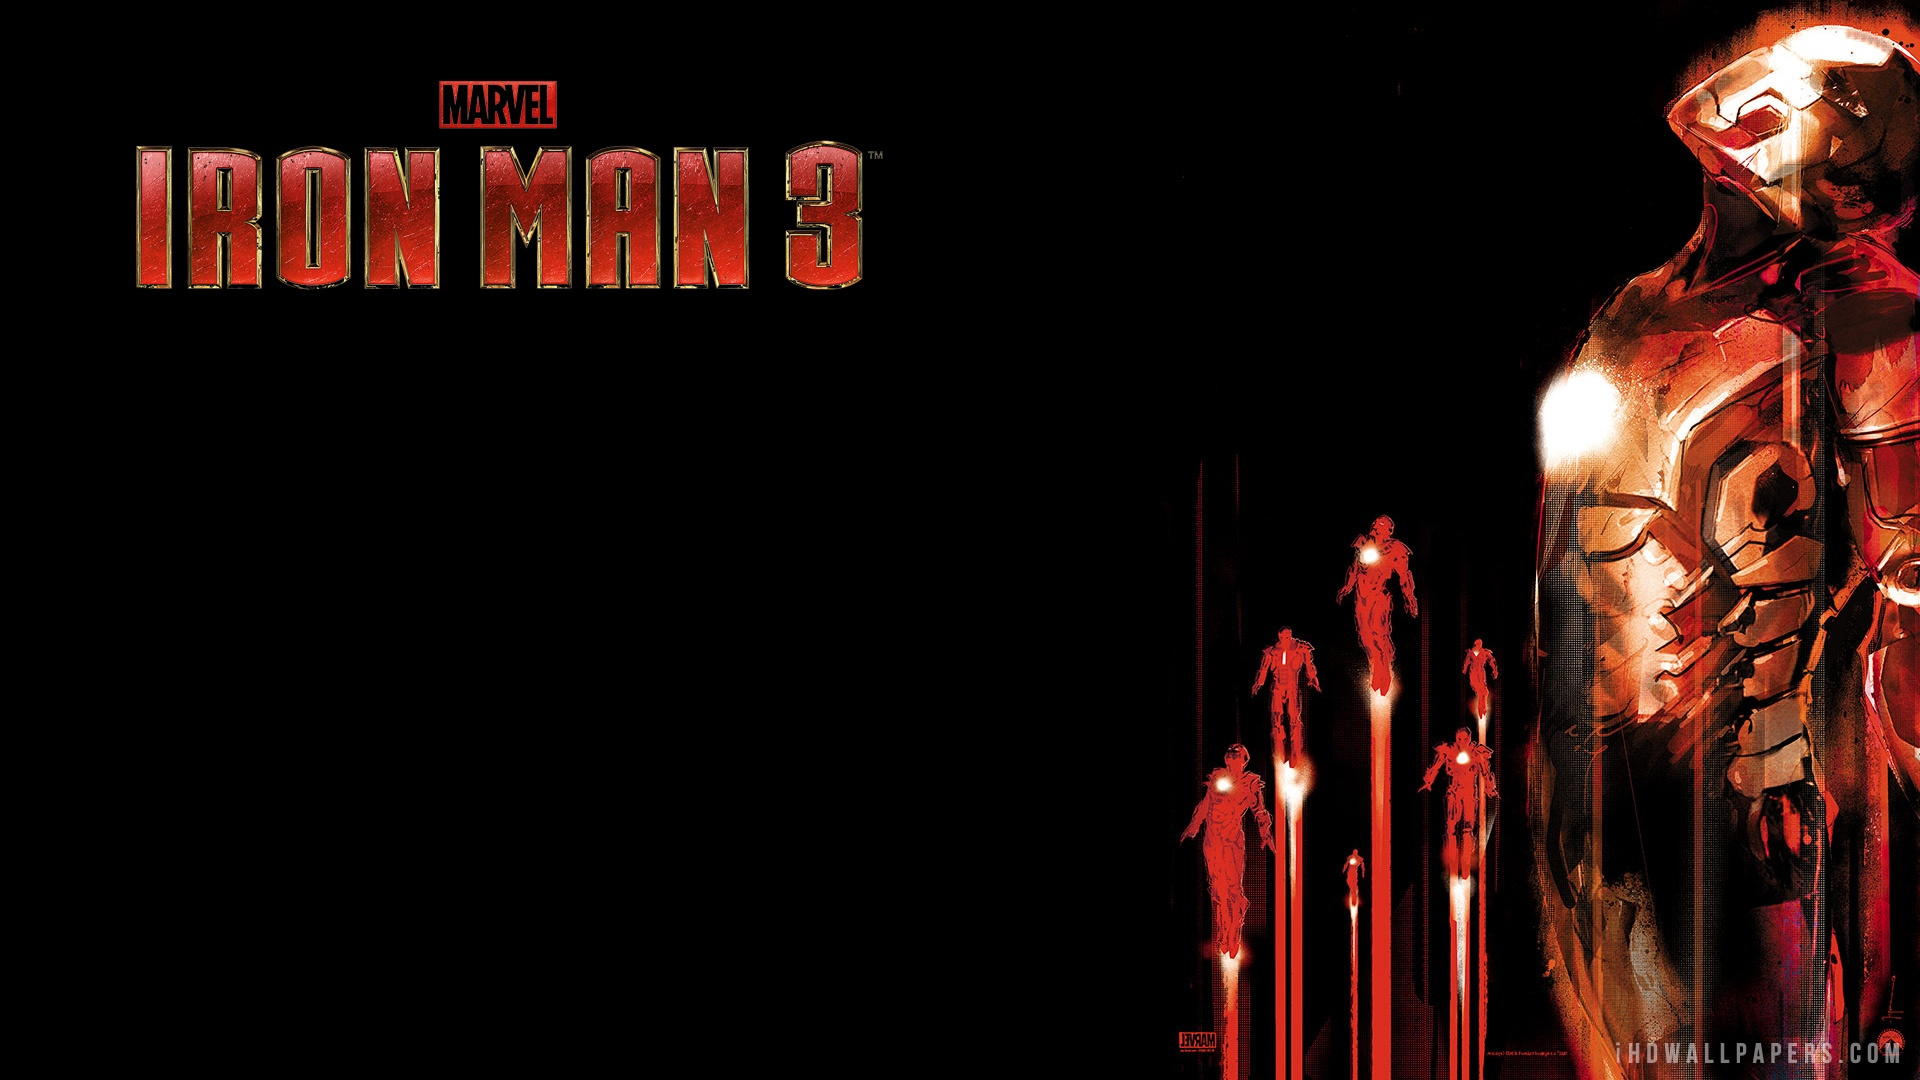 Iron Man 3 IMAX 3D HD Wallpaper   iHD Wallpapers 1920x1080